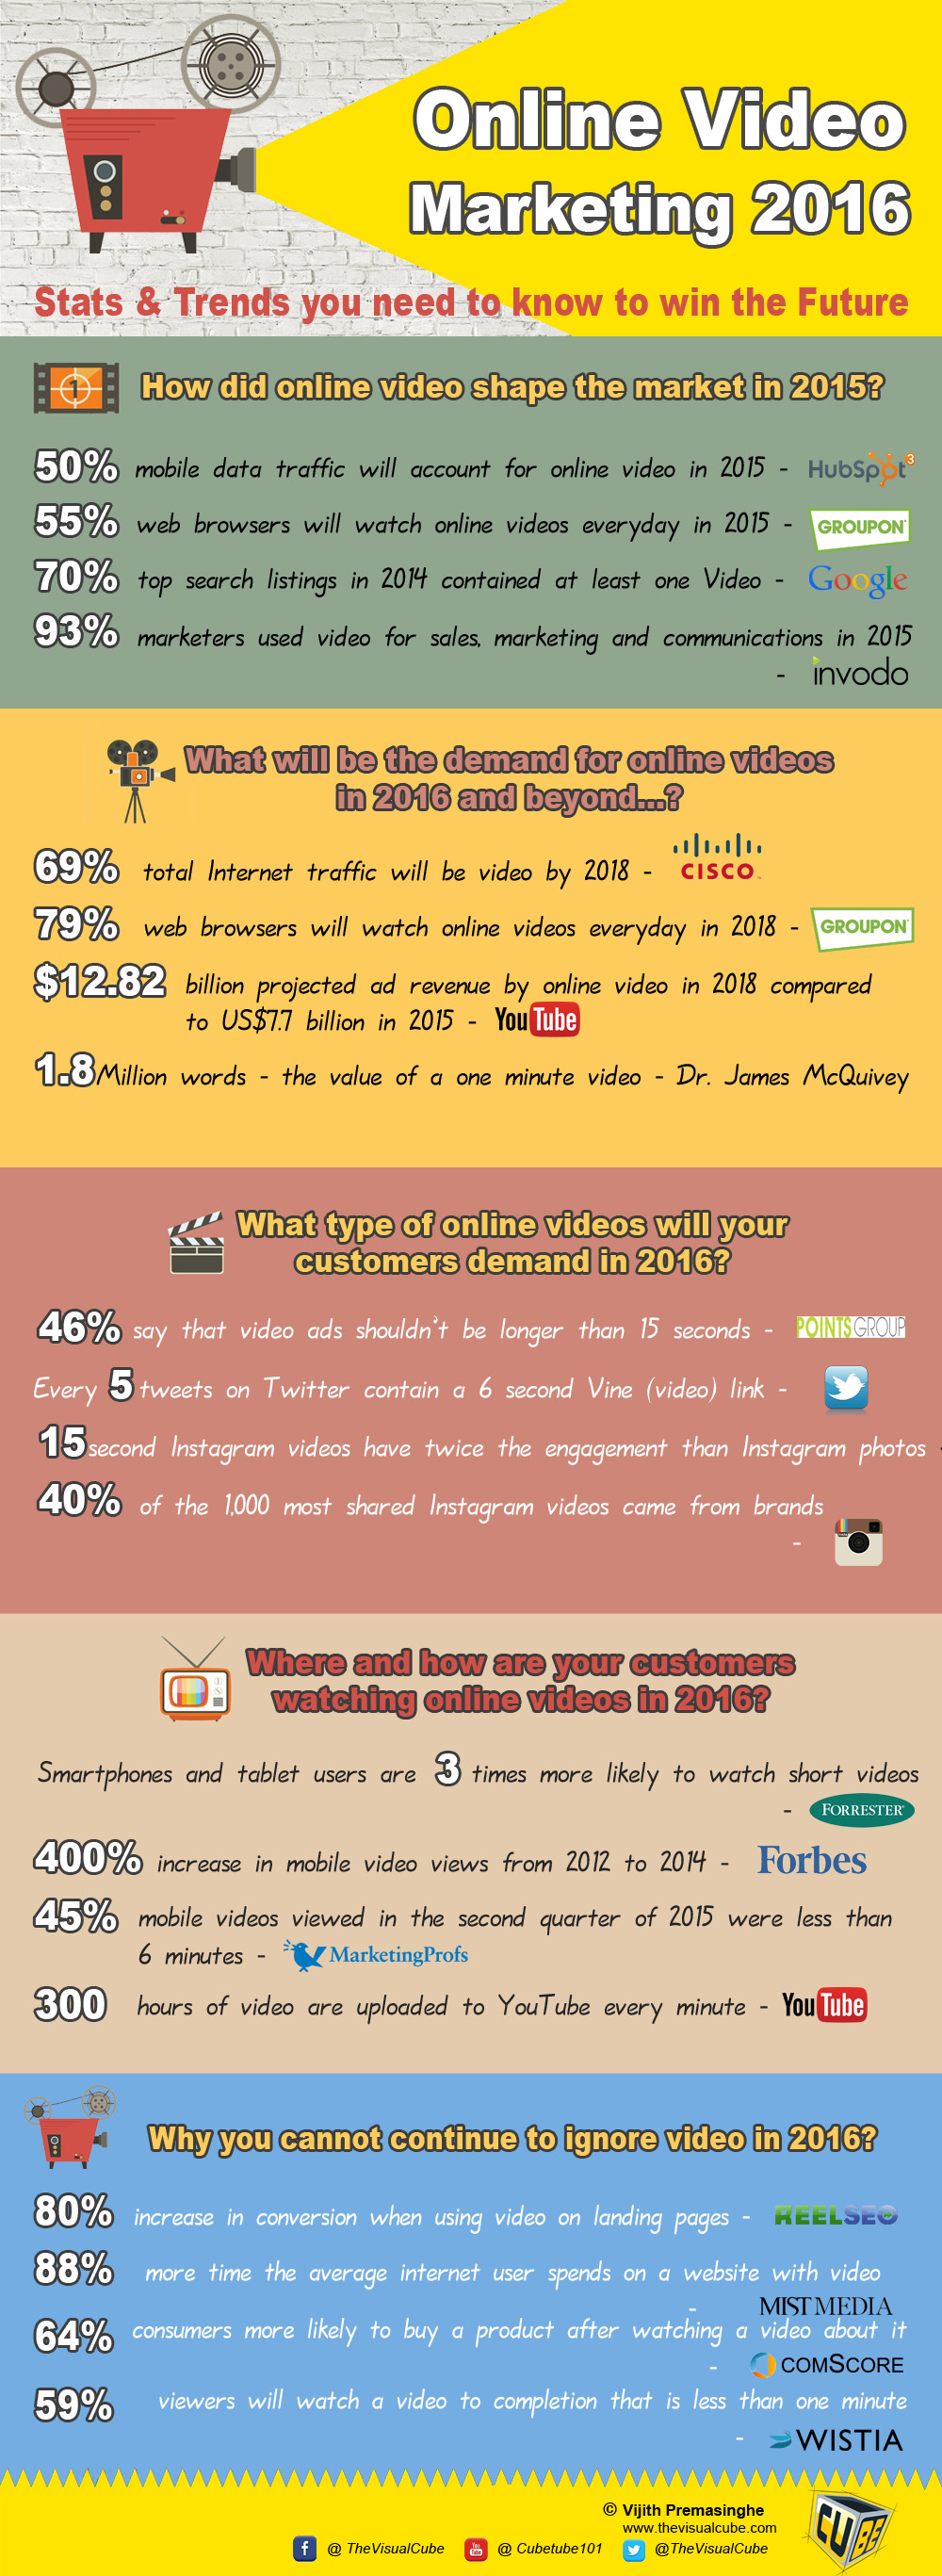 online video marketing statistics 2016 online video marketing infographic 2016 the visual cube